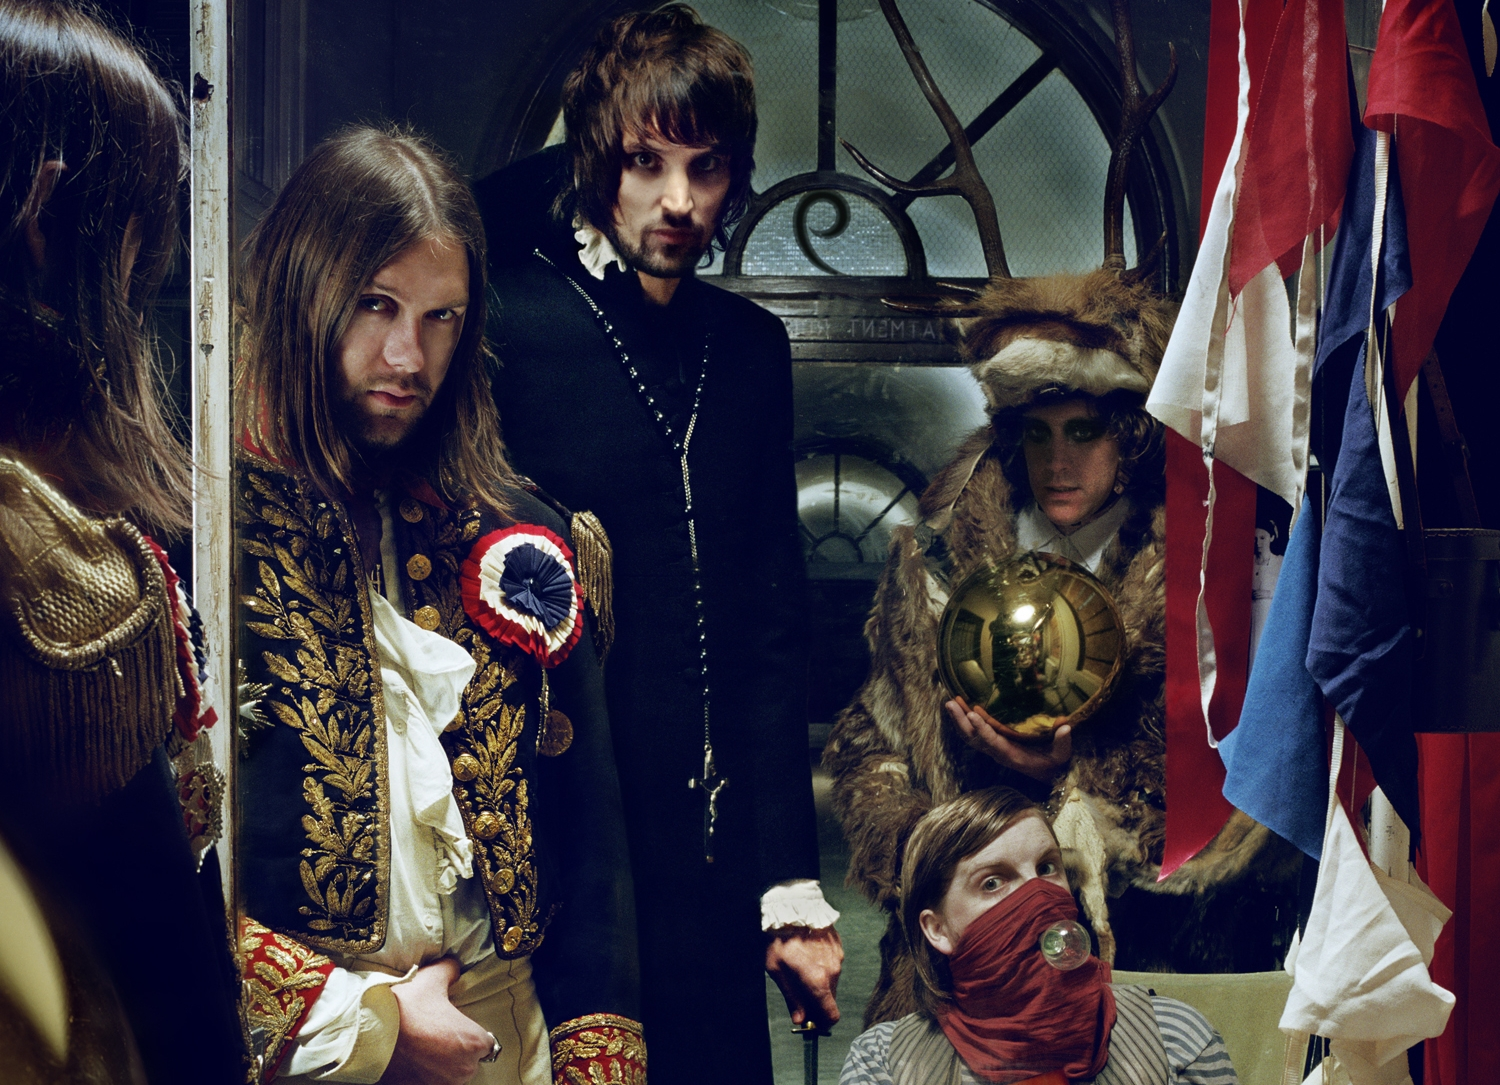 From the cover of Kasabian's West Ryder Pauper Lunatic Asylum